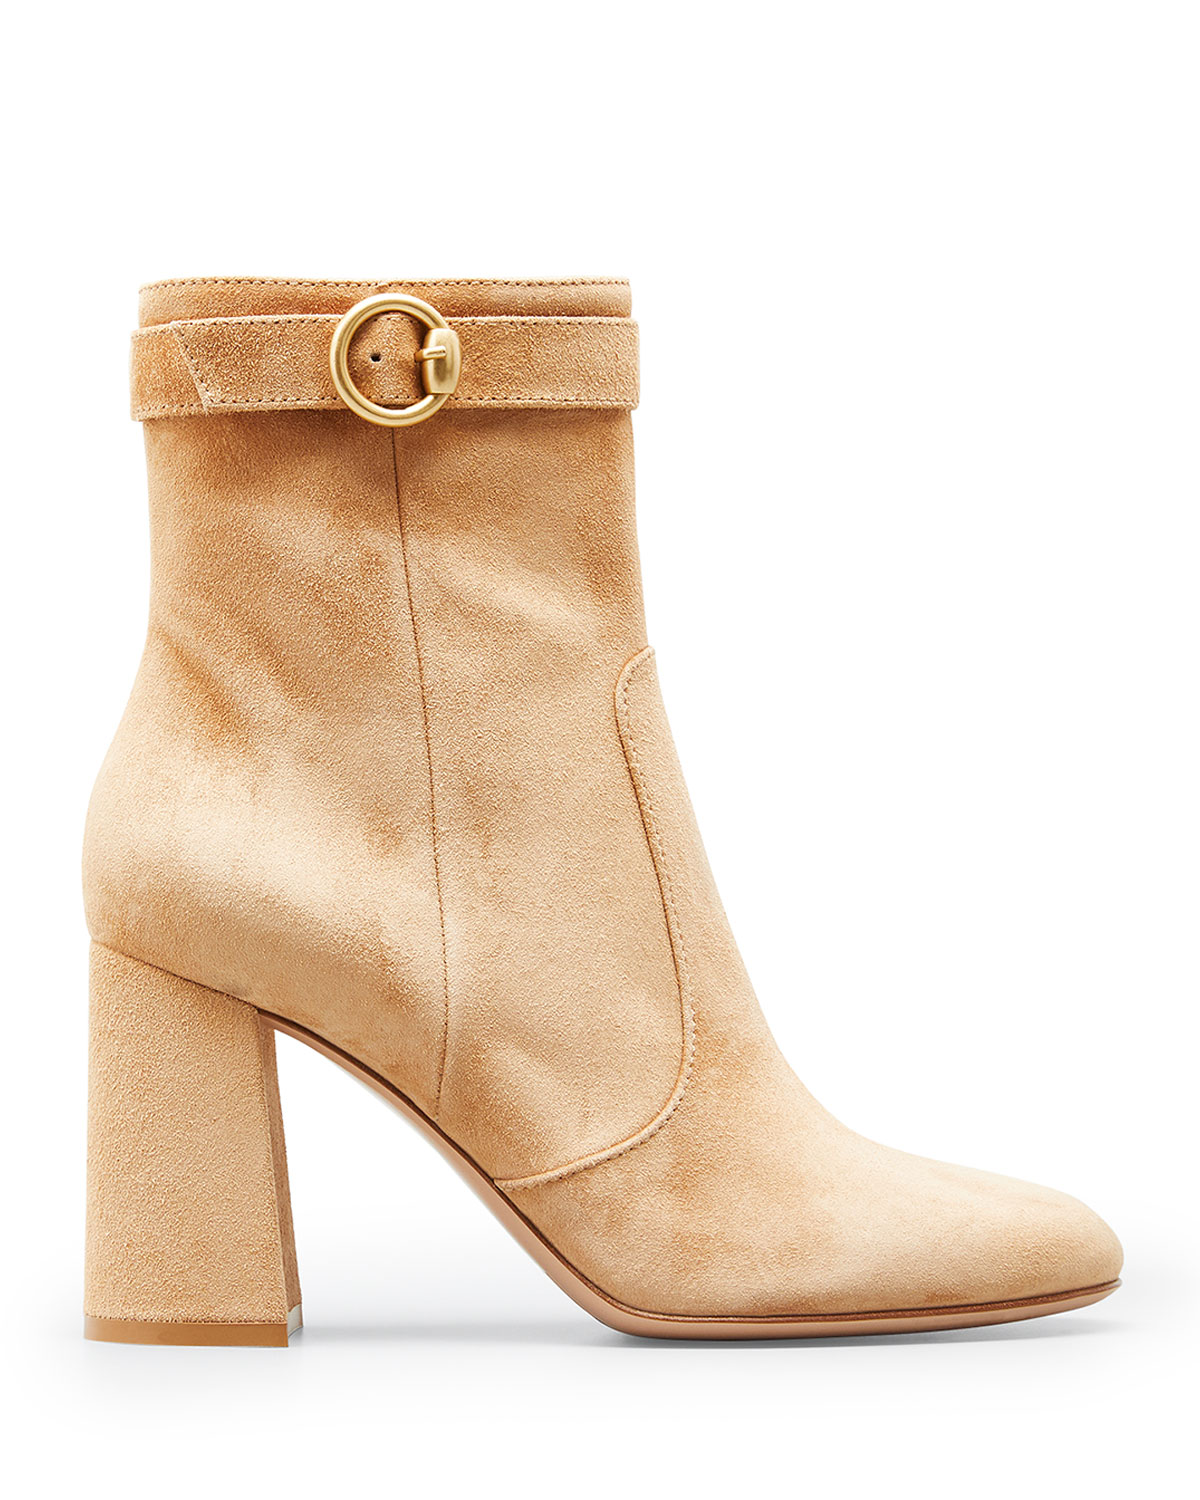 Gianvito Rossi 85mm Suede Buckle Booties